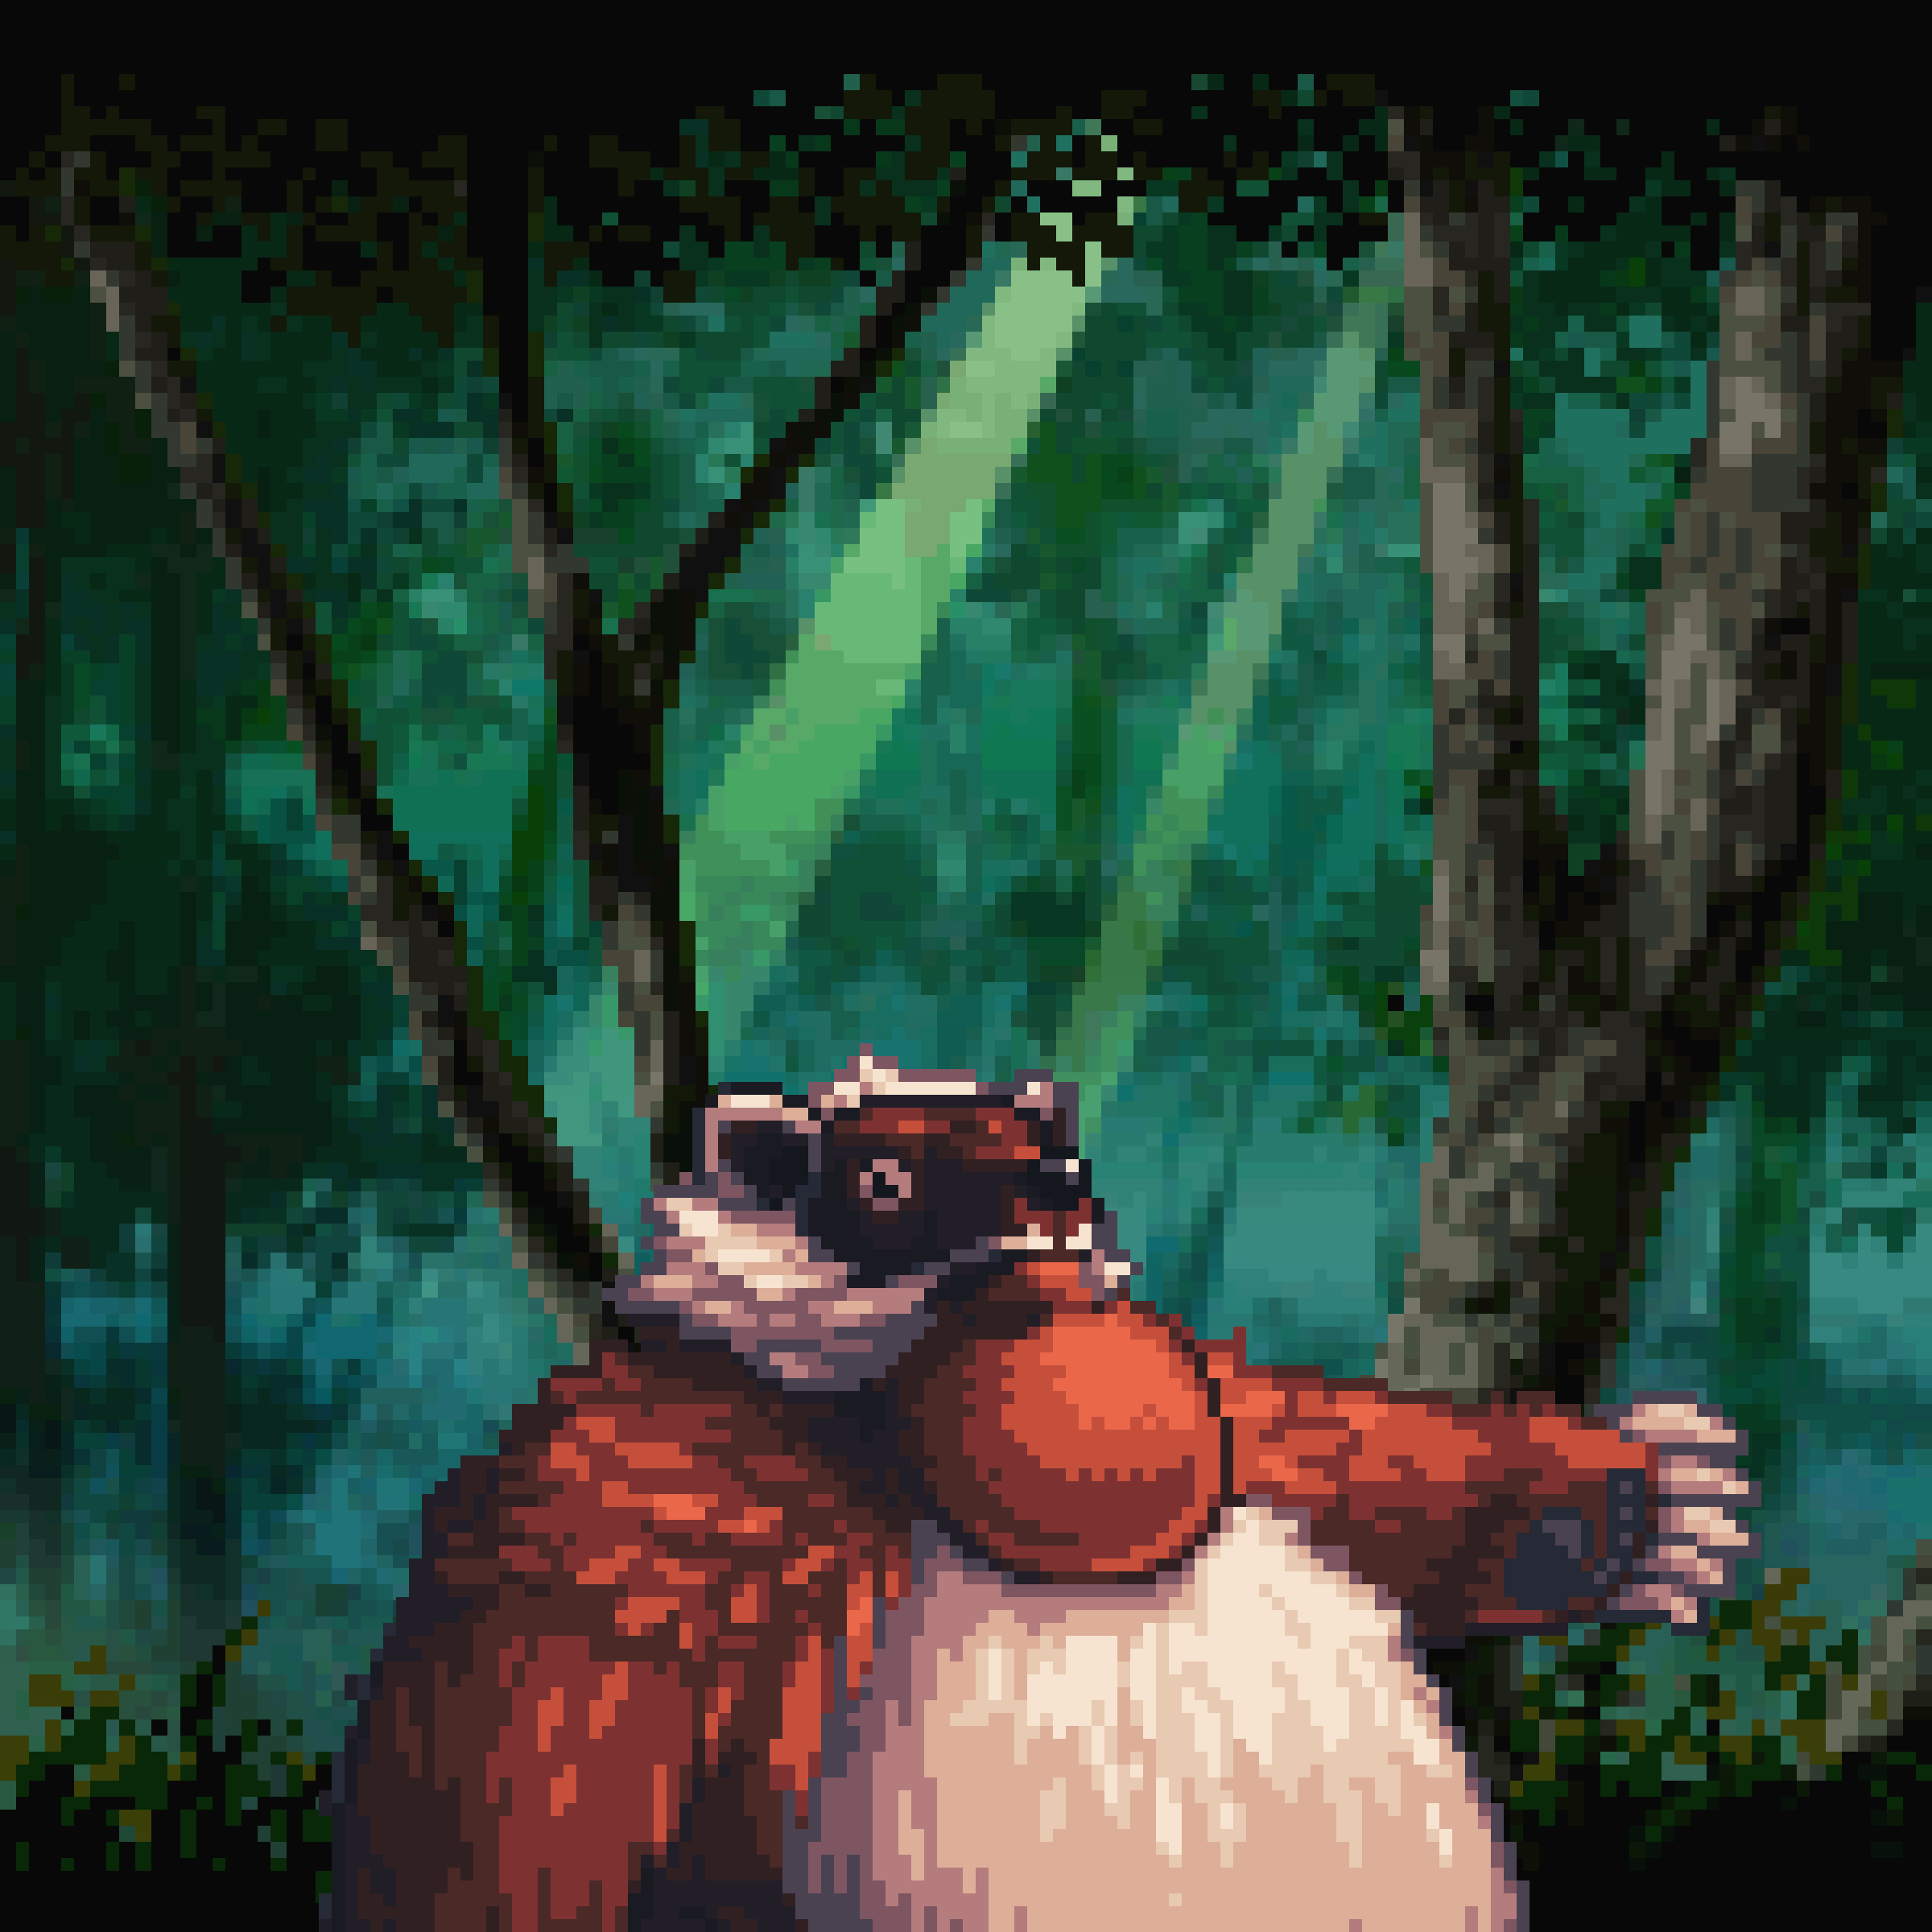 forest-vgm.png